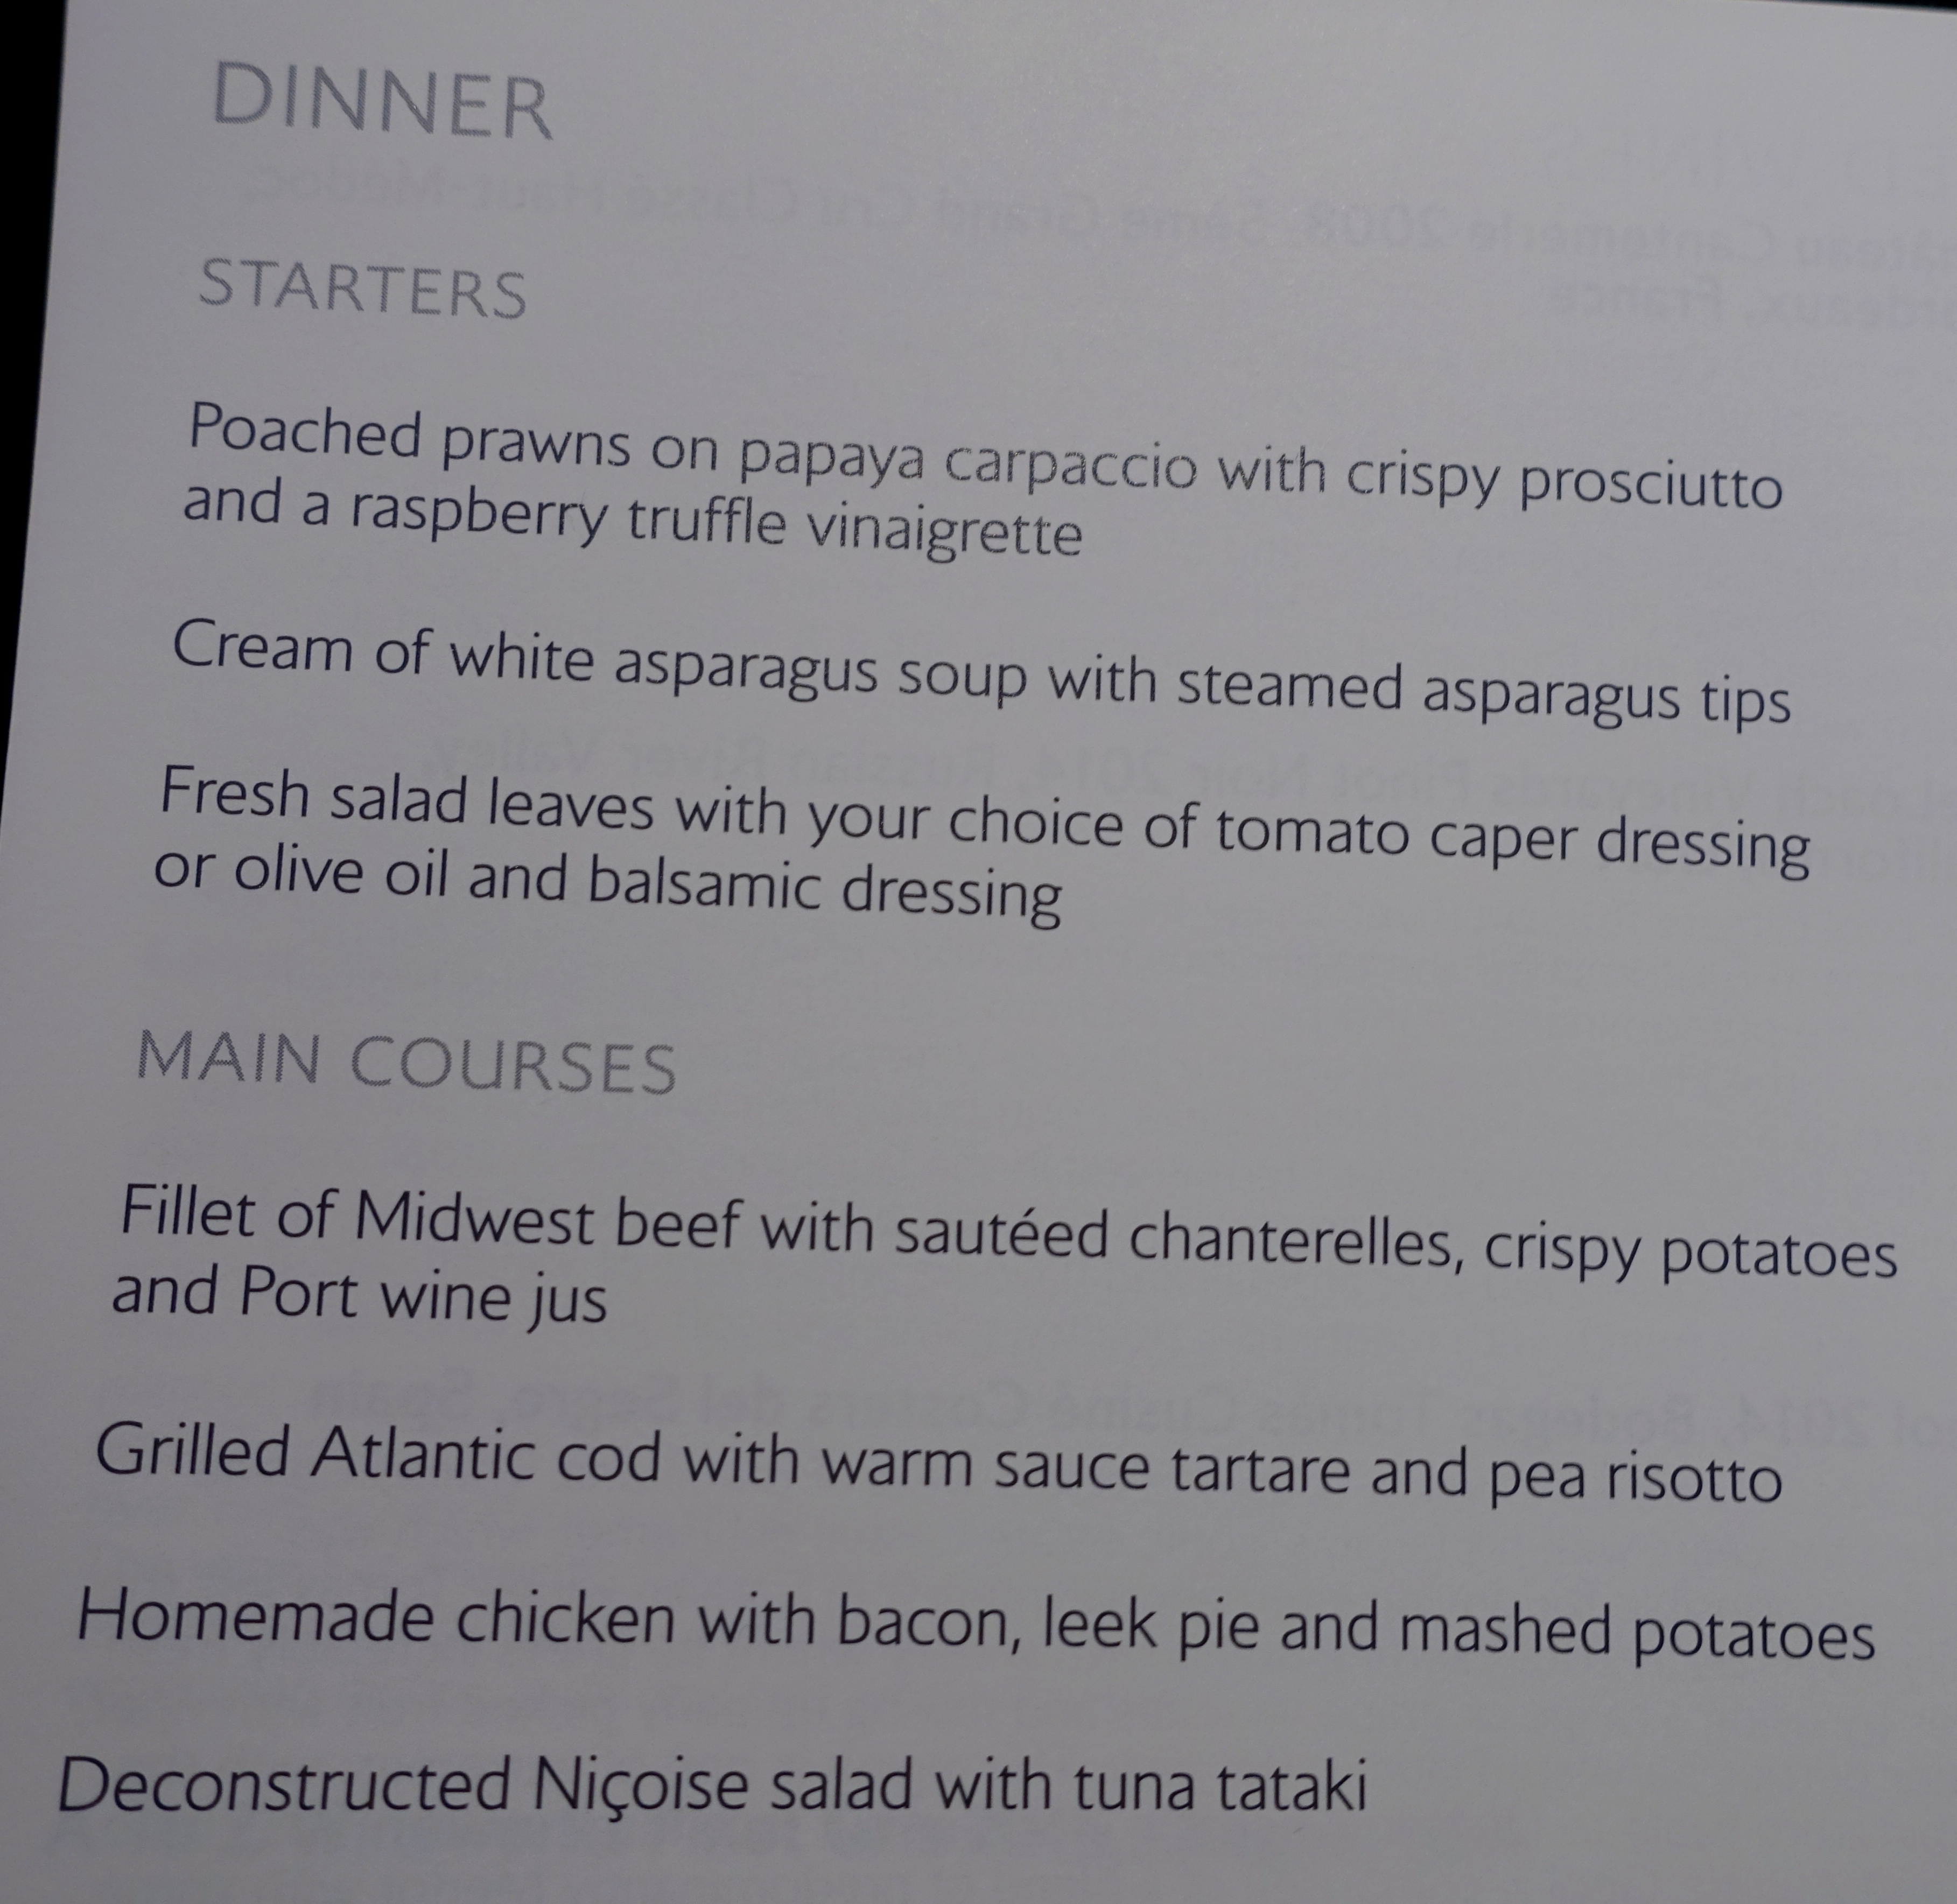 British Airways First Class Dinner Menu, New York to London